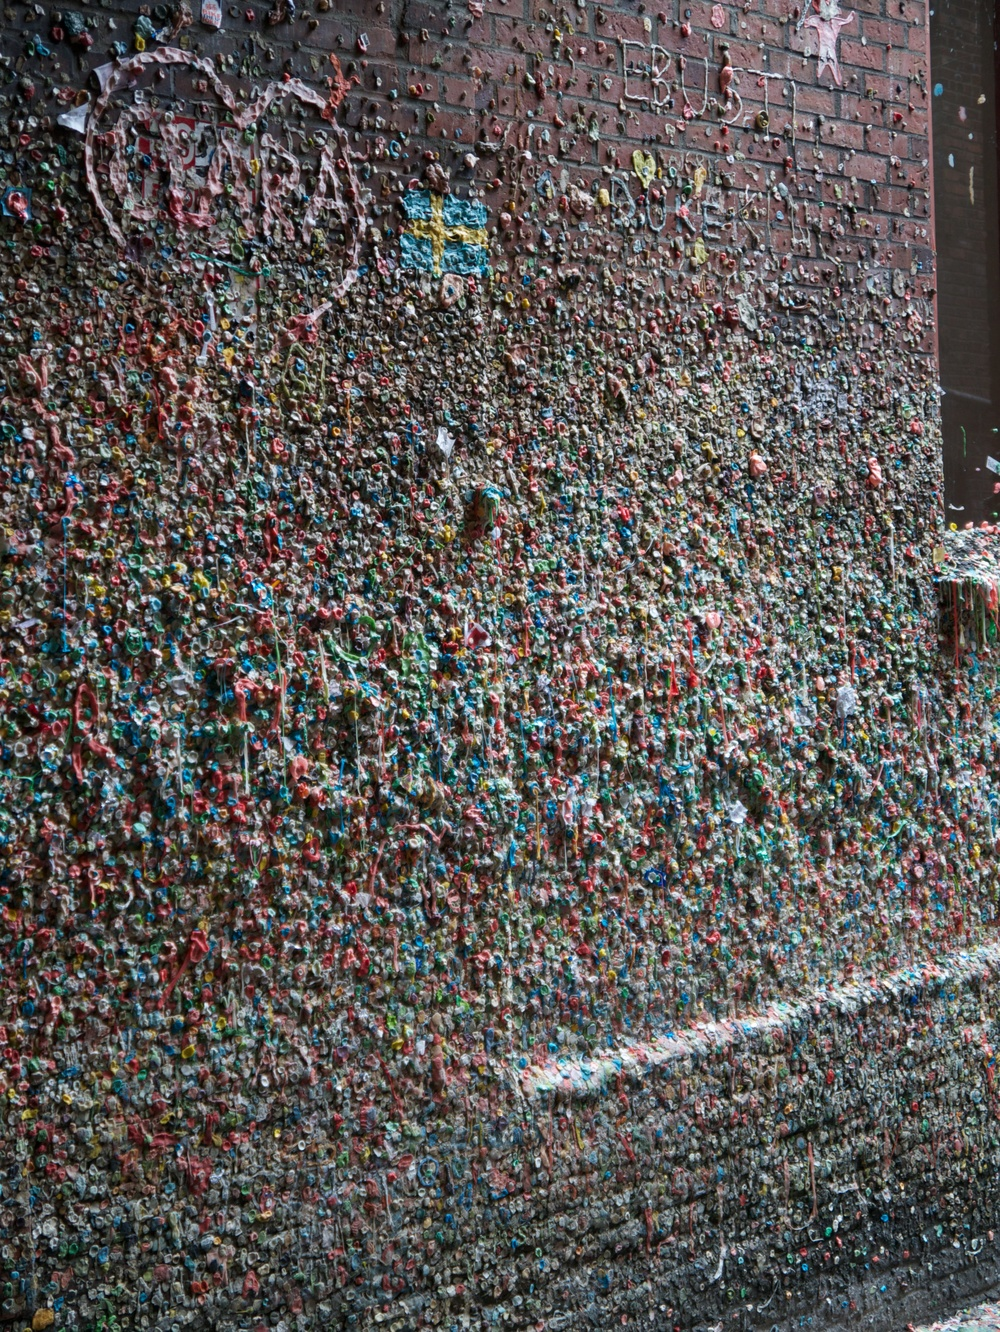 The famous 'gum wall'. Not going to lie - it's kind of gross.